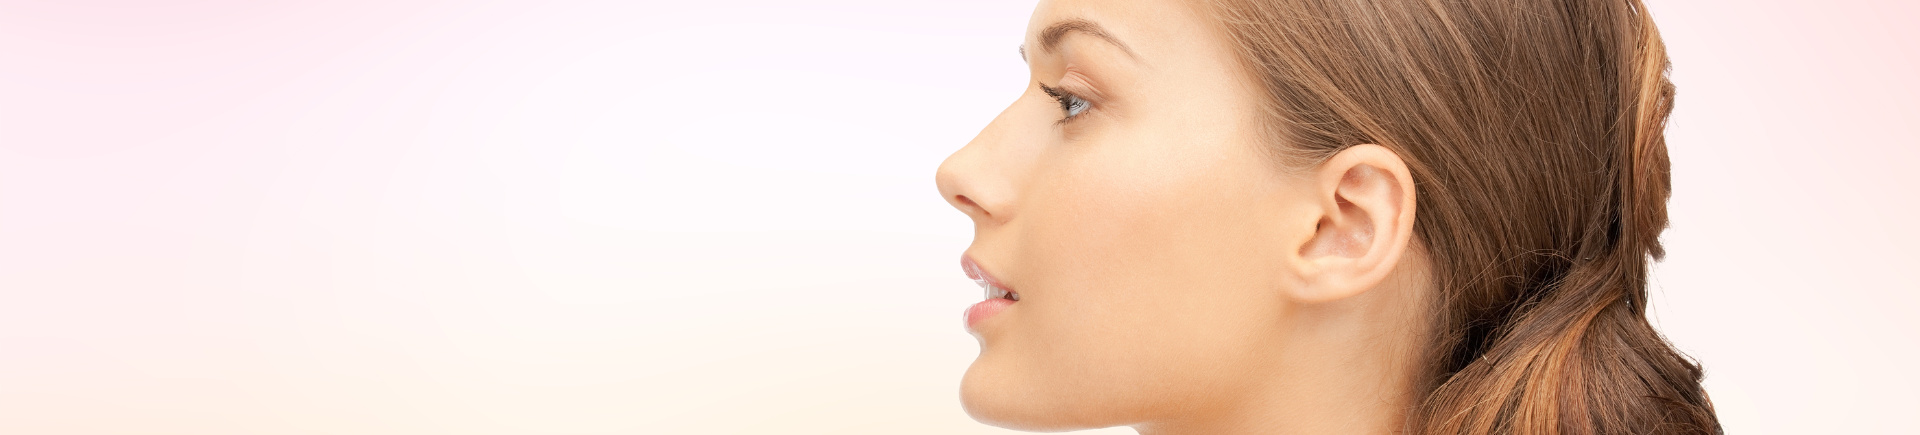 woman after botox treatment